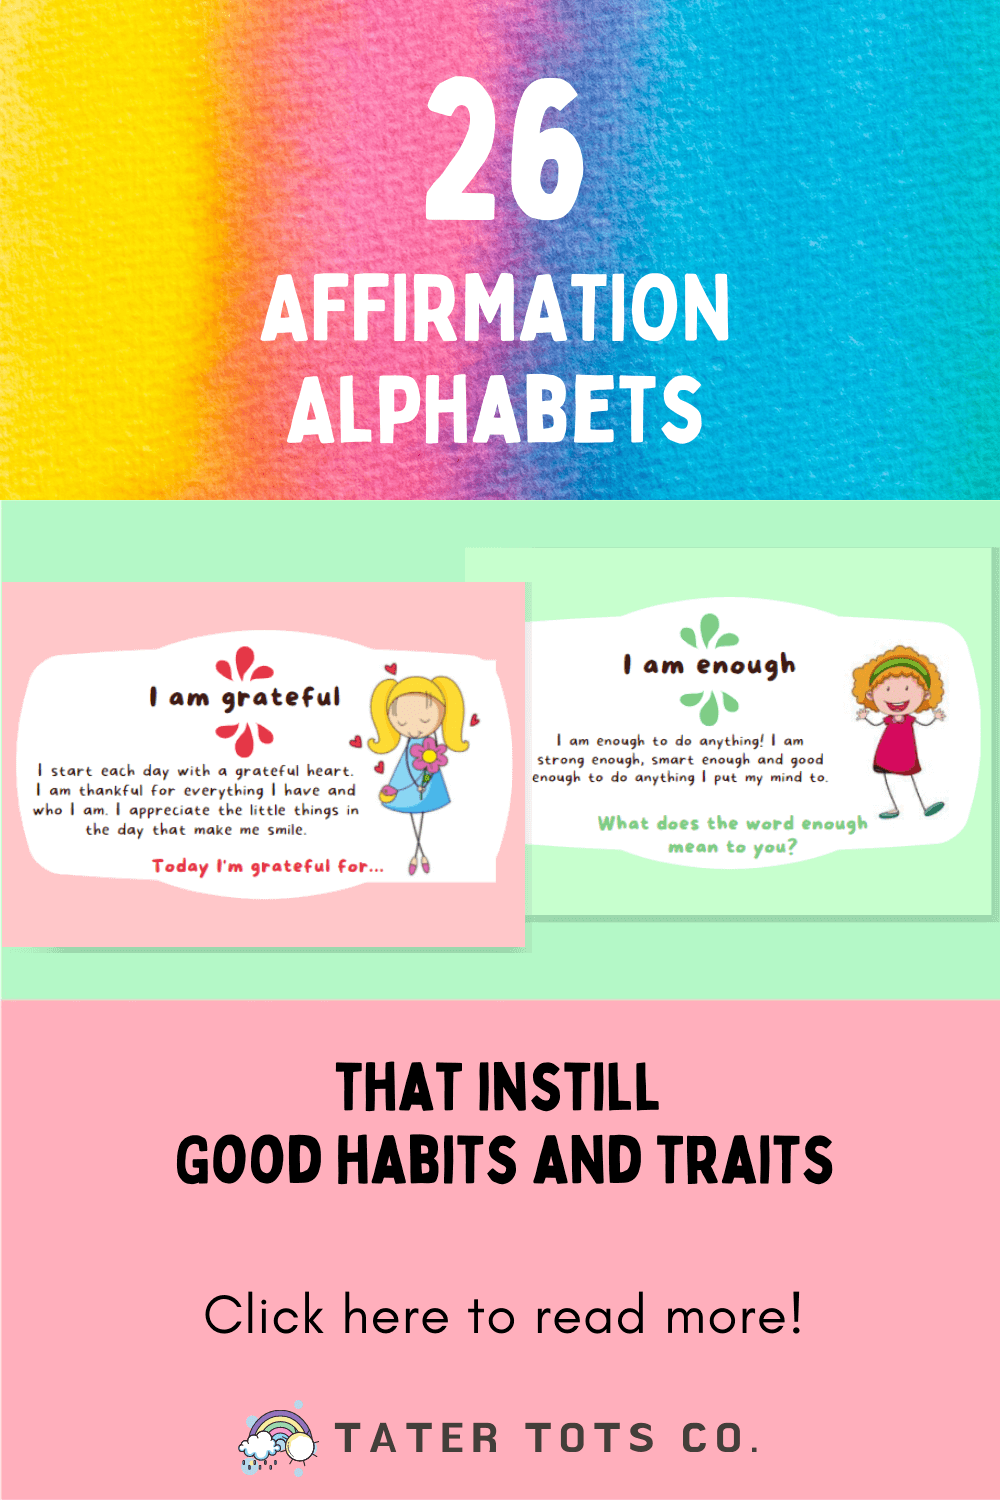 Here are 26 Affirmation Alphabets that instill good habits and traits in young kids! You can use affirmation cards in your child's daily activities and home-based activities. Each card has a daily journal prompt for discussion and self reflection. #affiirmationsforkids #flashcardsforkids #positiveparenting